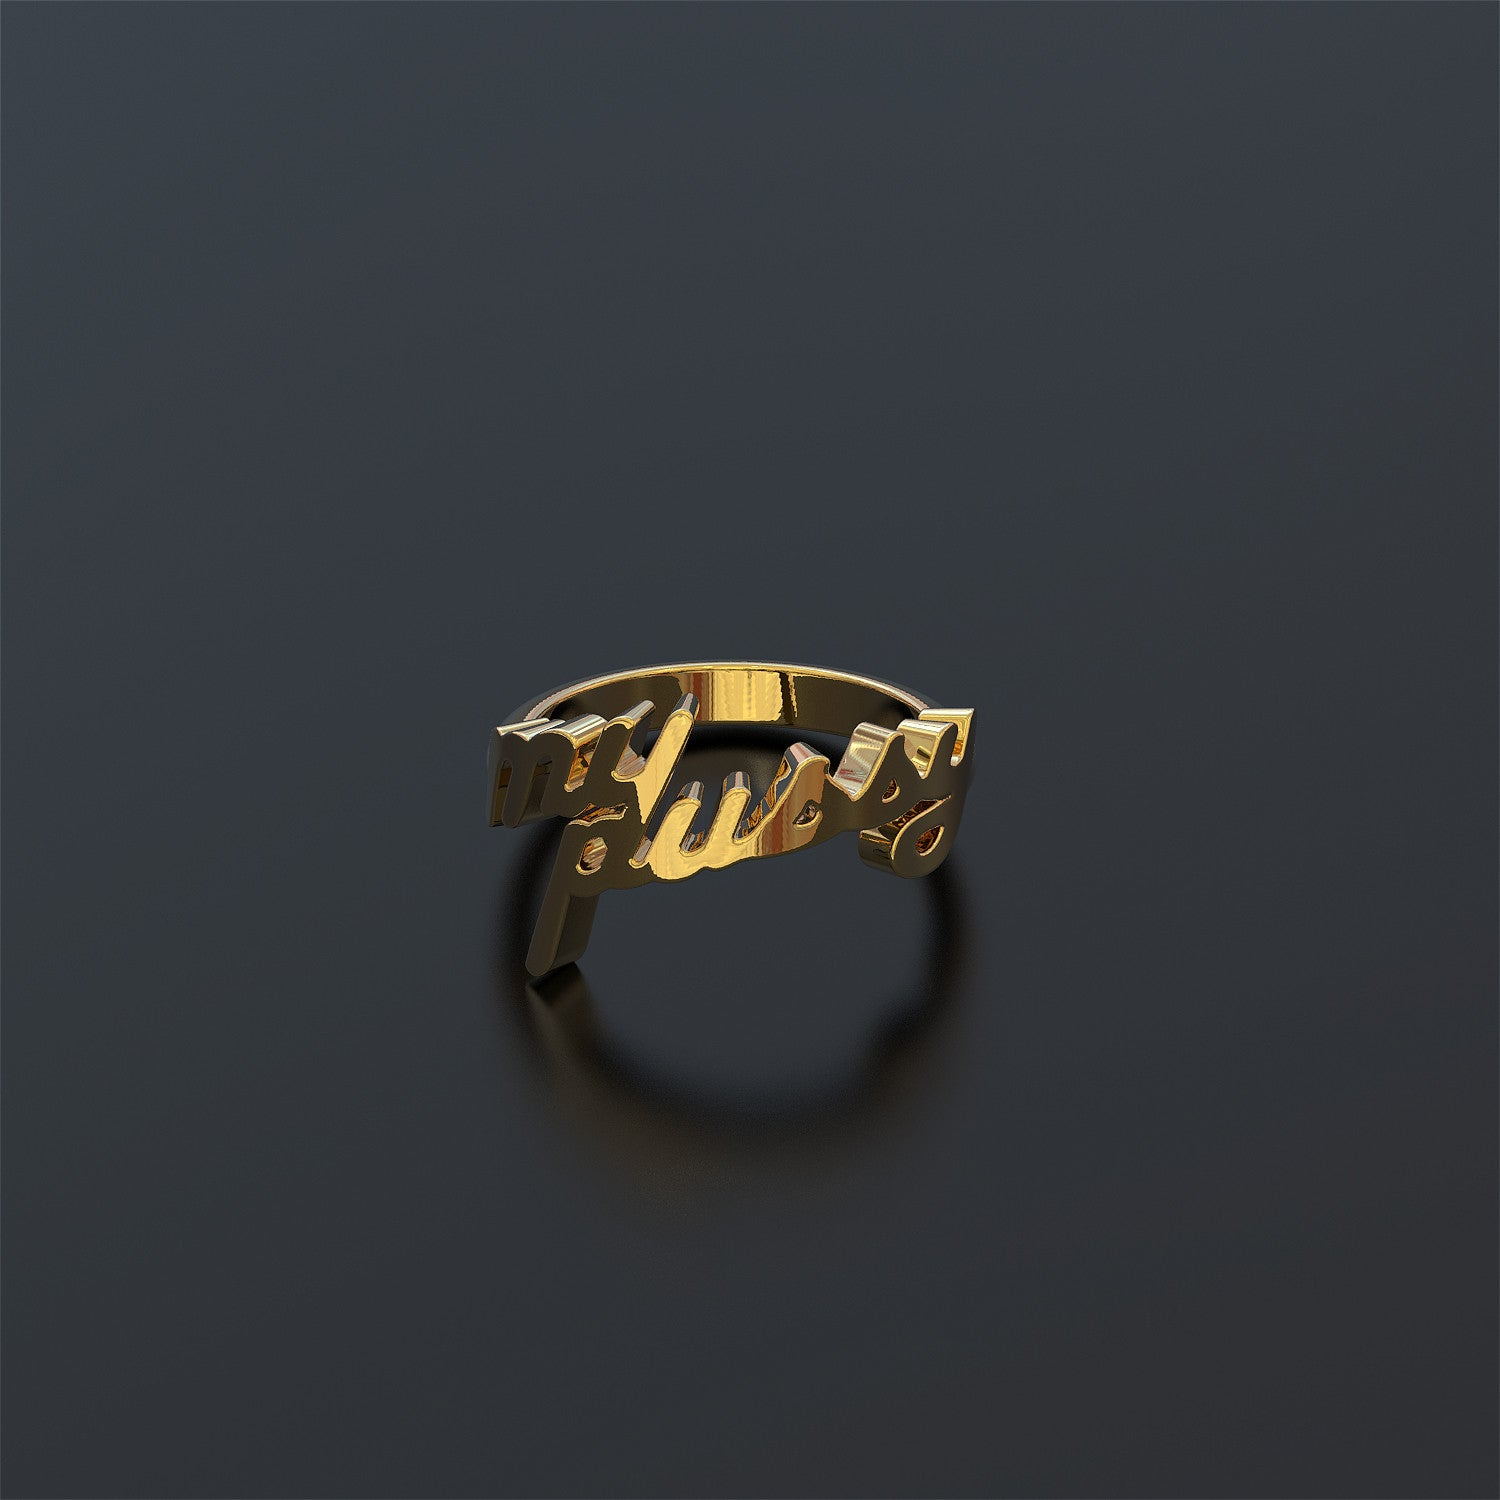 My Pussy Ring